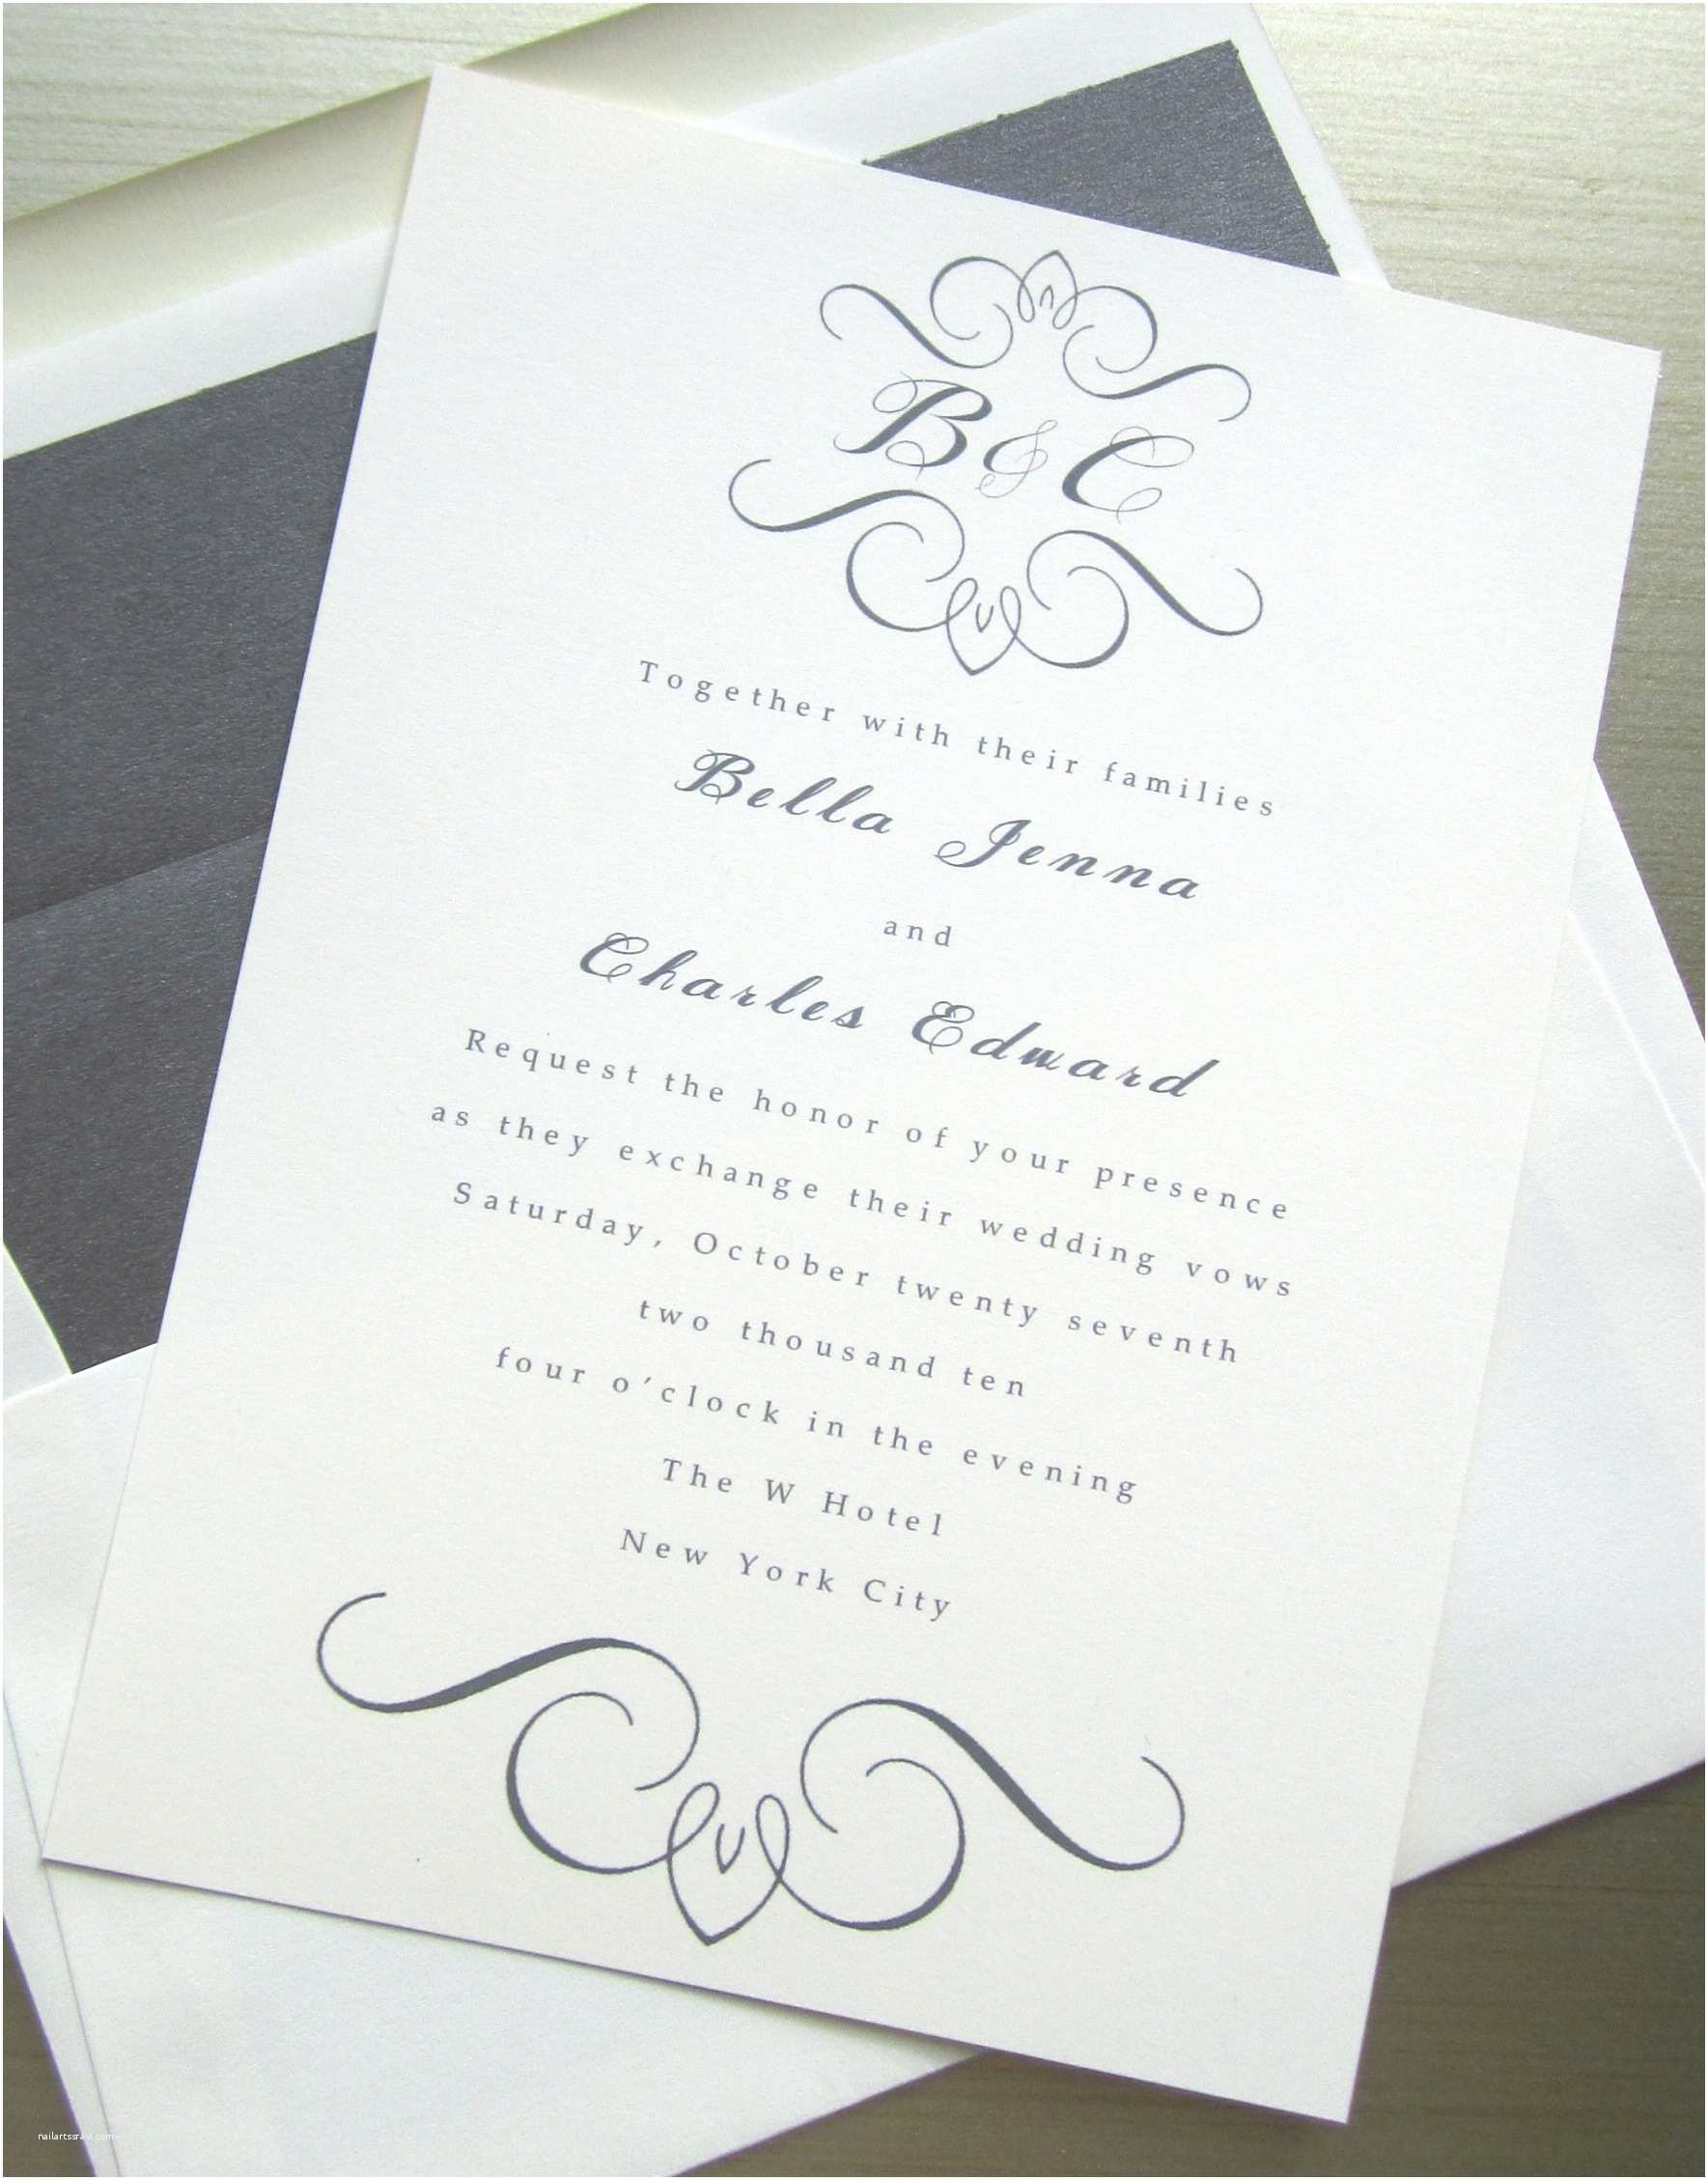 Simple Monogram Wedding Invitations Elegant Wedding Invites White Gray with Custom Monogram